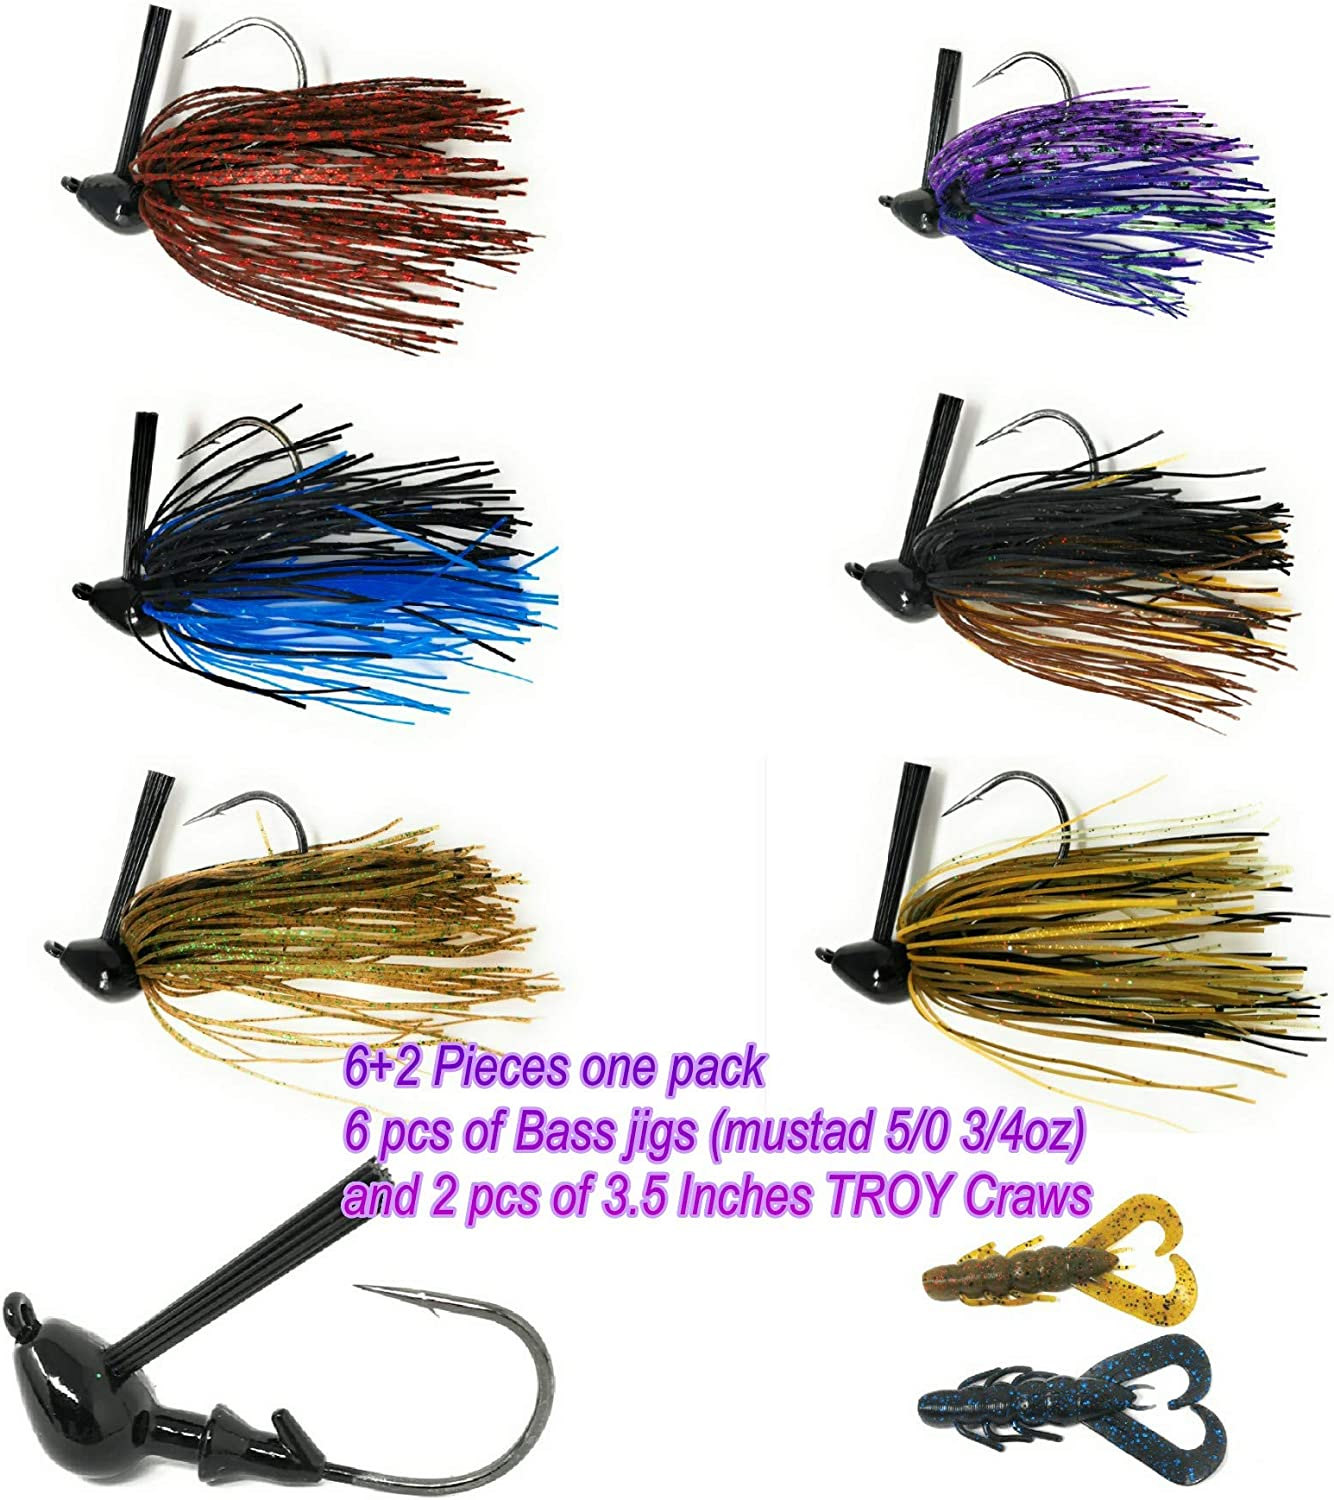 Wtrees Swim Jigs Kit